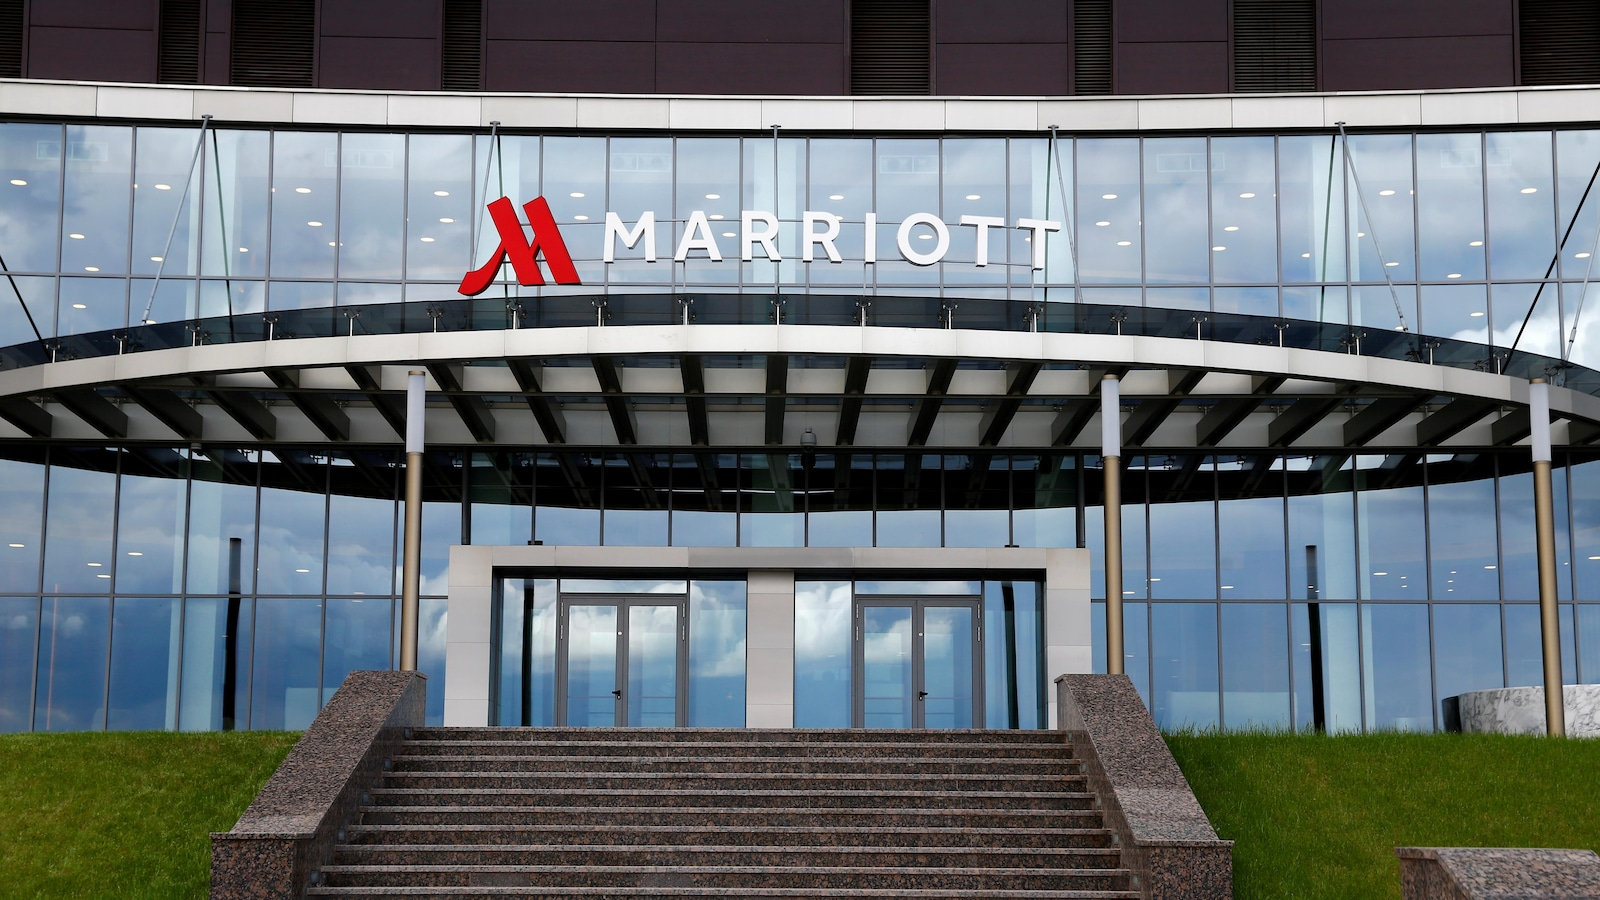 La devanture d'un hôtel Marriott.